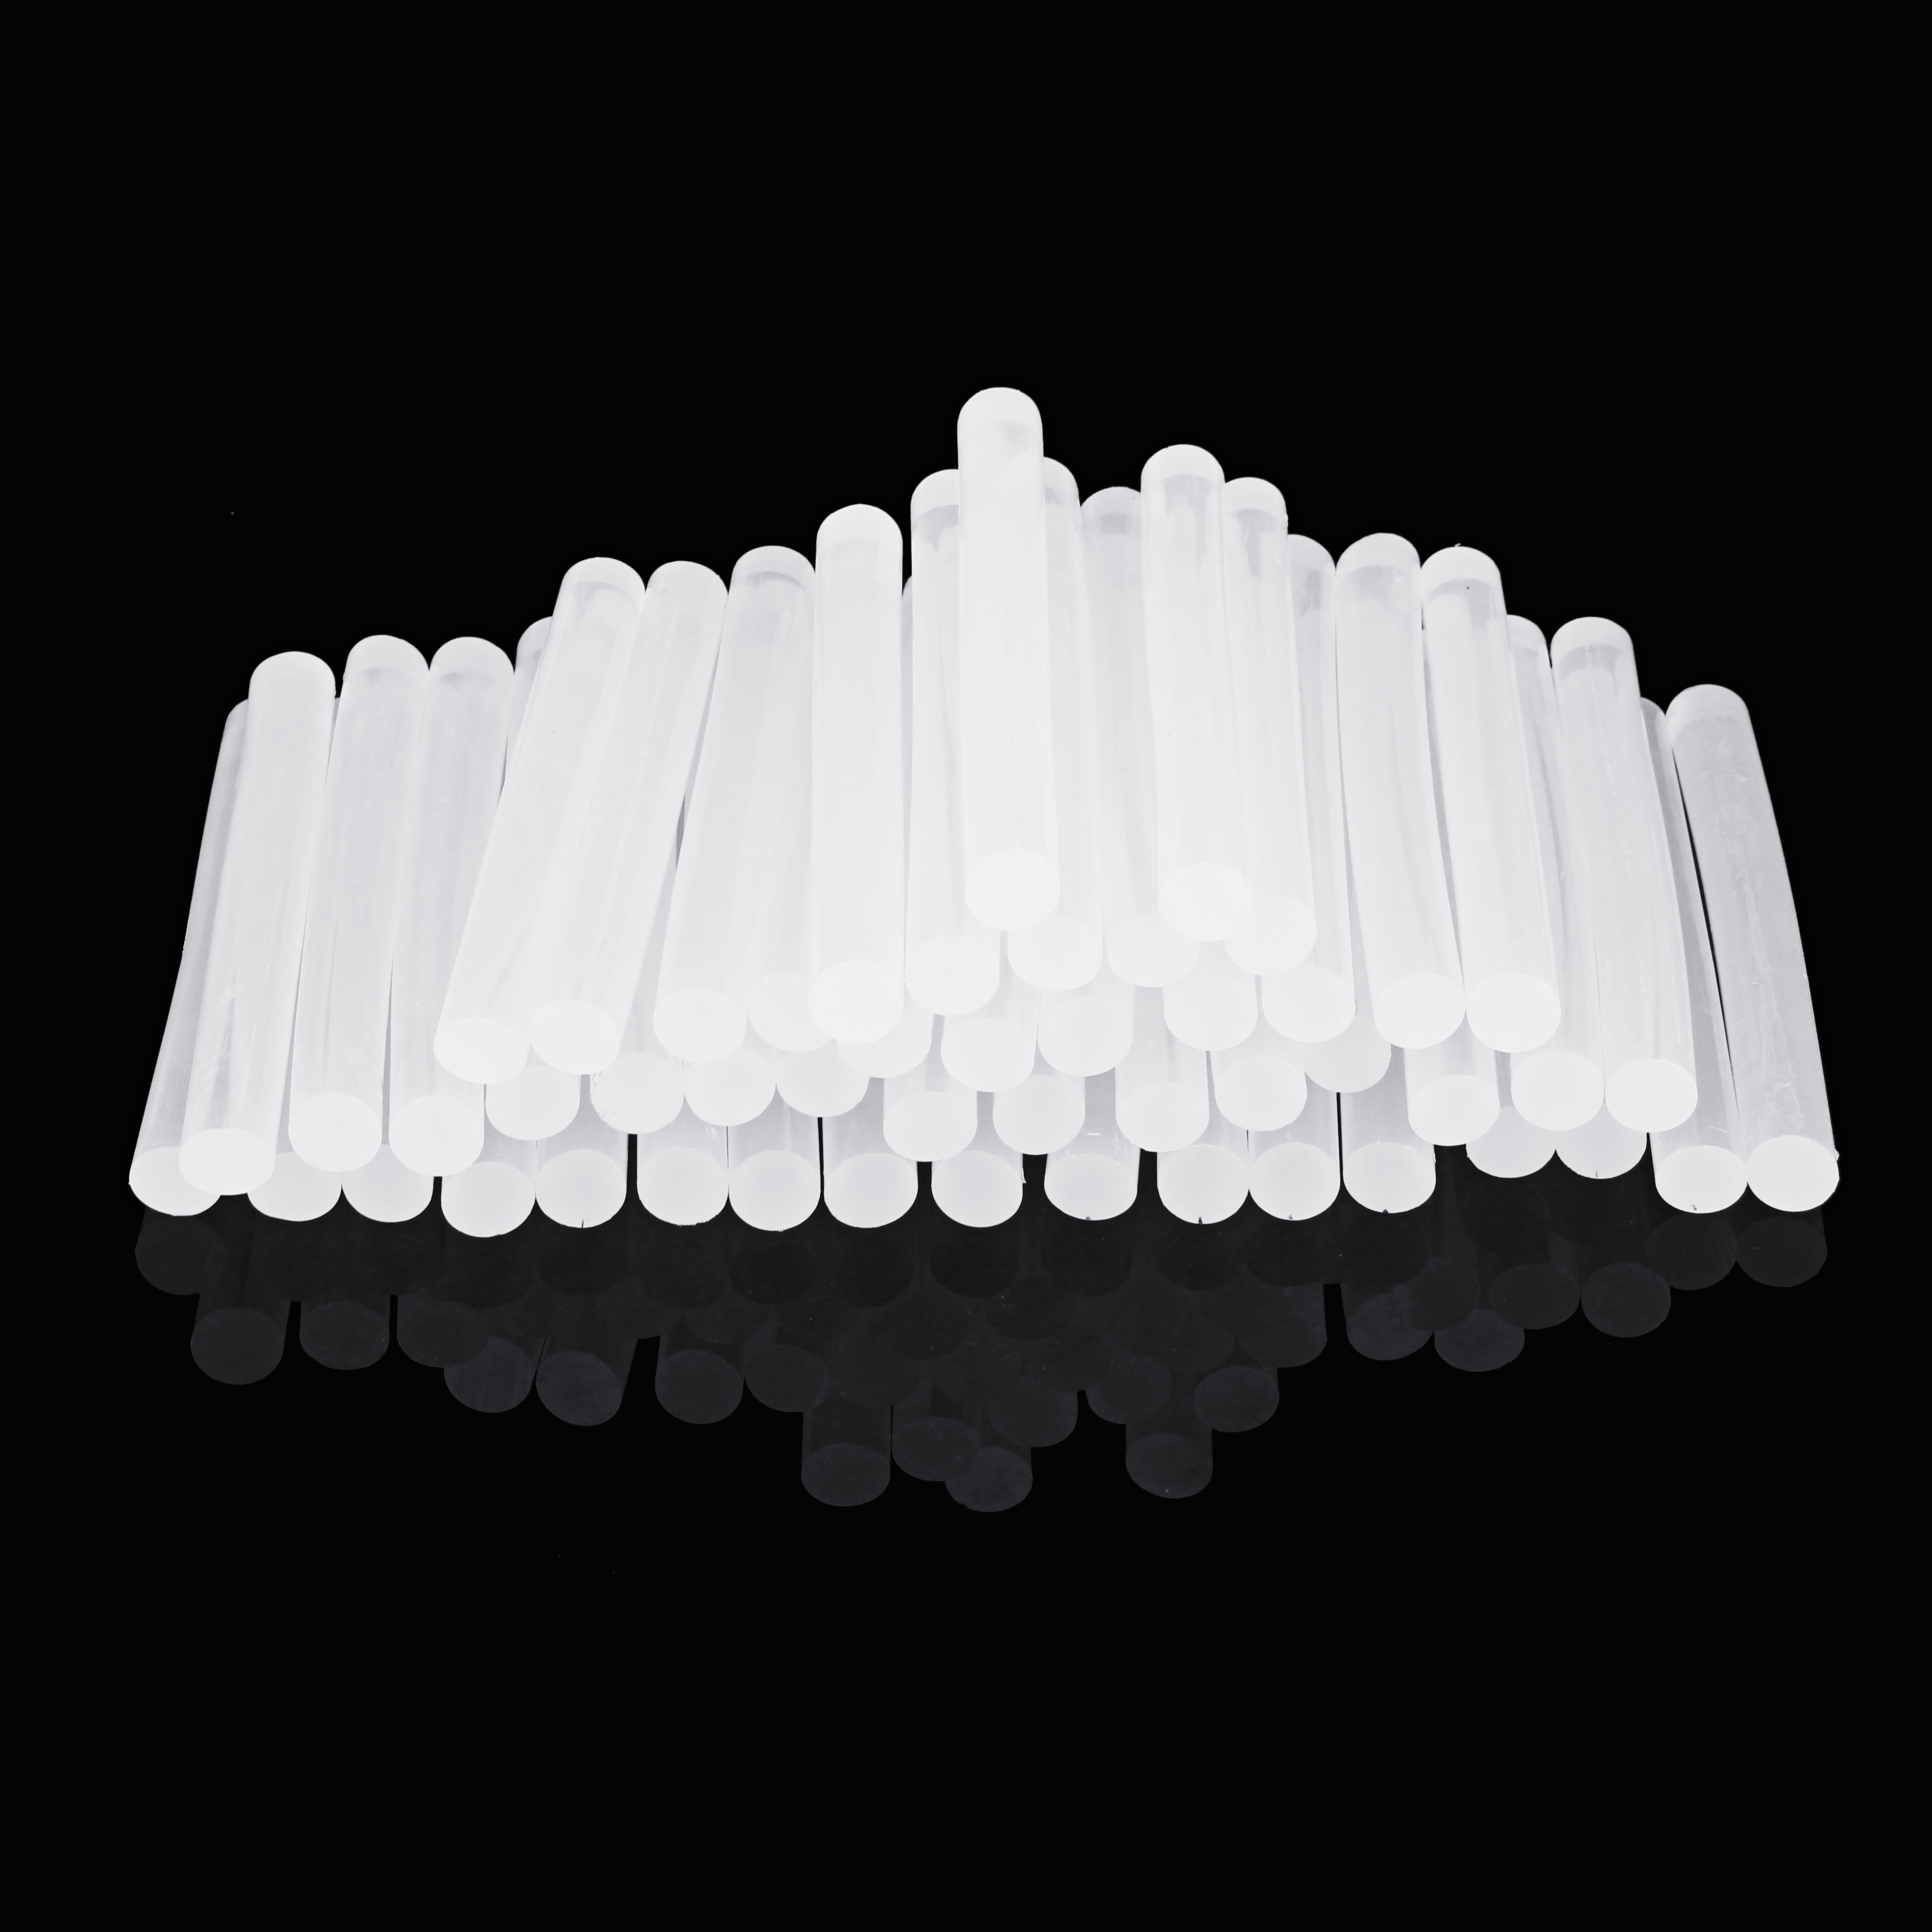 50Pcs 11mm x 100mm White Transparent Hot Melt Gule Sticks DIY Craft Model Repair Adhesive